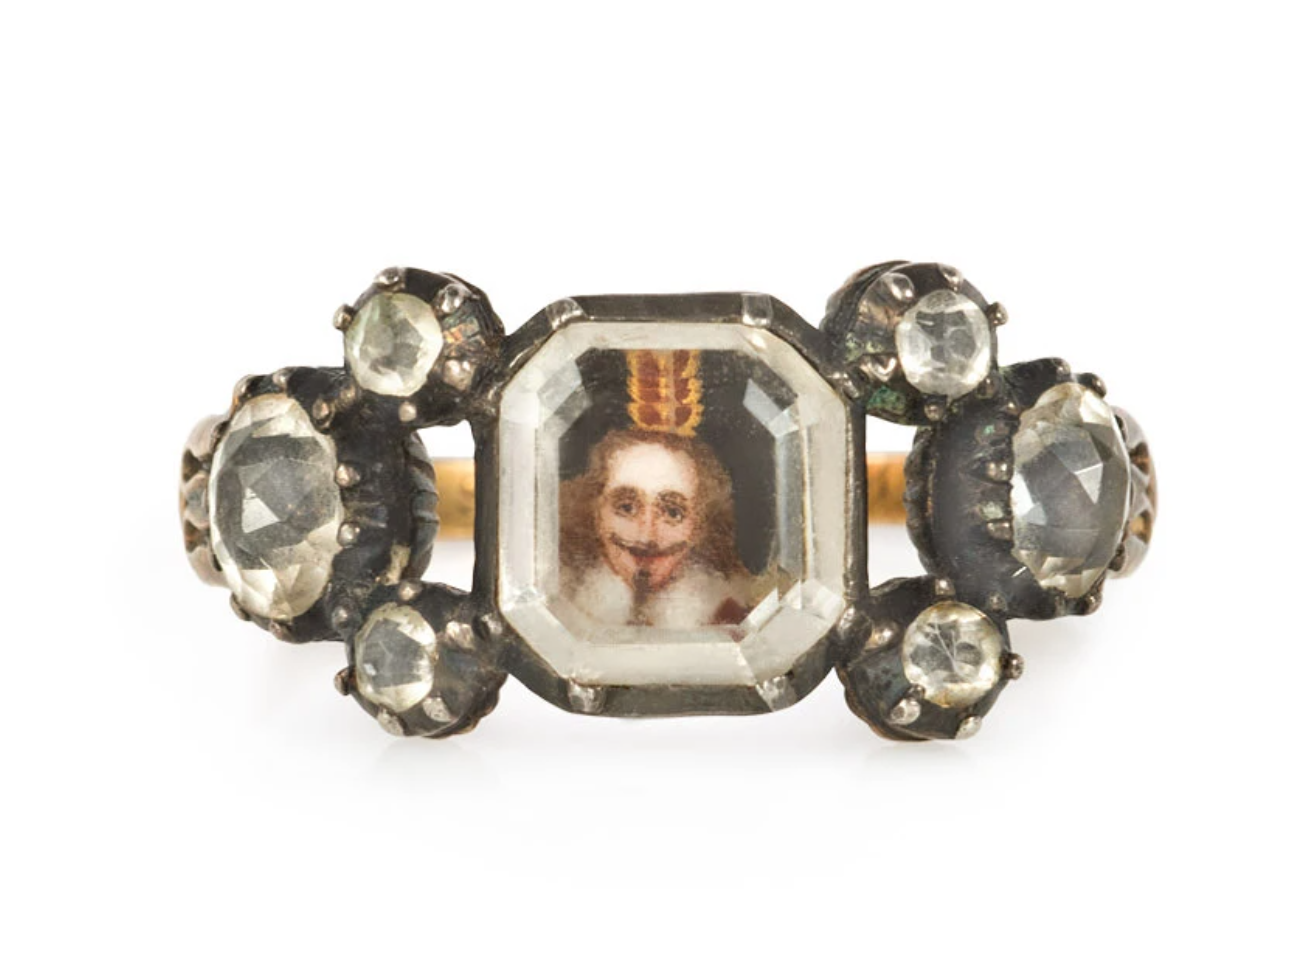 An antique Stuart crystal ring centering on a flat octagonal quartz revealing a miniature royal portrait, flanked on both sides by three old cut quartz and gold foliate shoulders, with engraved upper shank and under gallery, in 18k. Inscribed W. Mc 1738